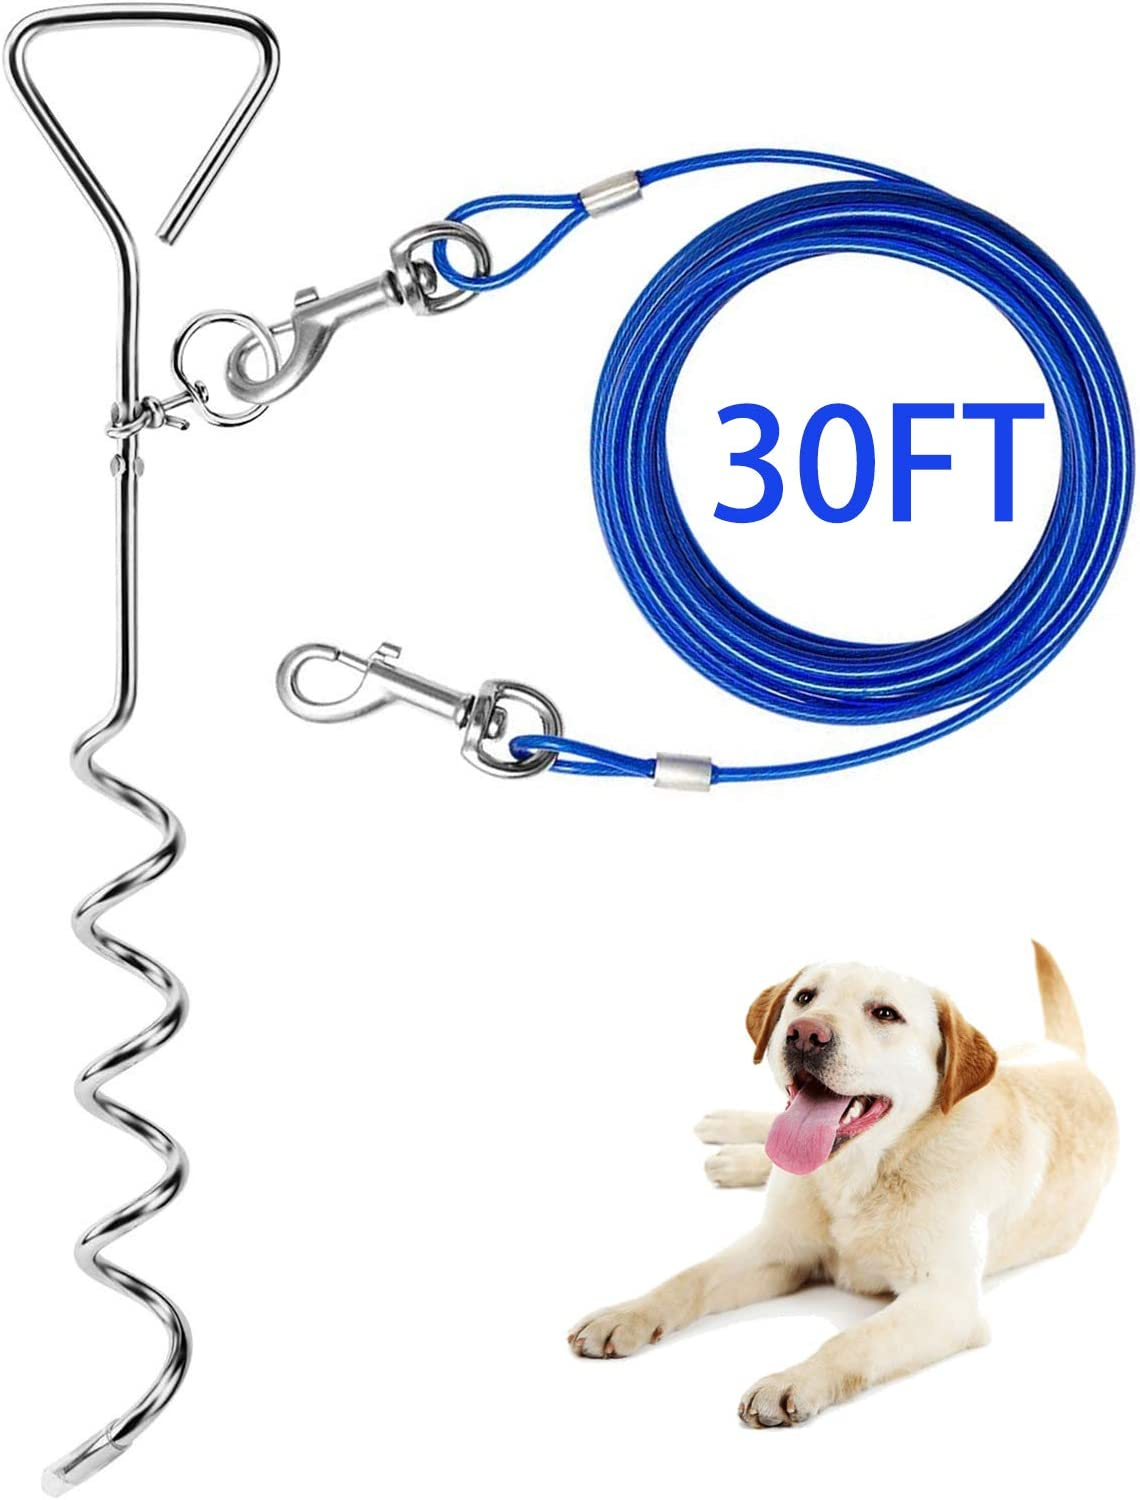 Dog Tie Out Cable and Stake Outside for 30ft Cheap bargain Popular LeashChain 16